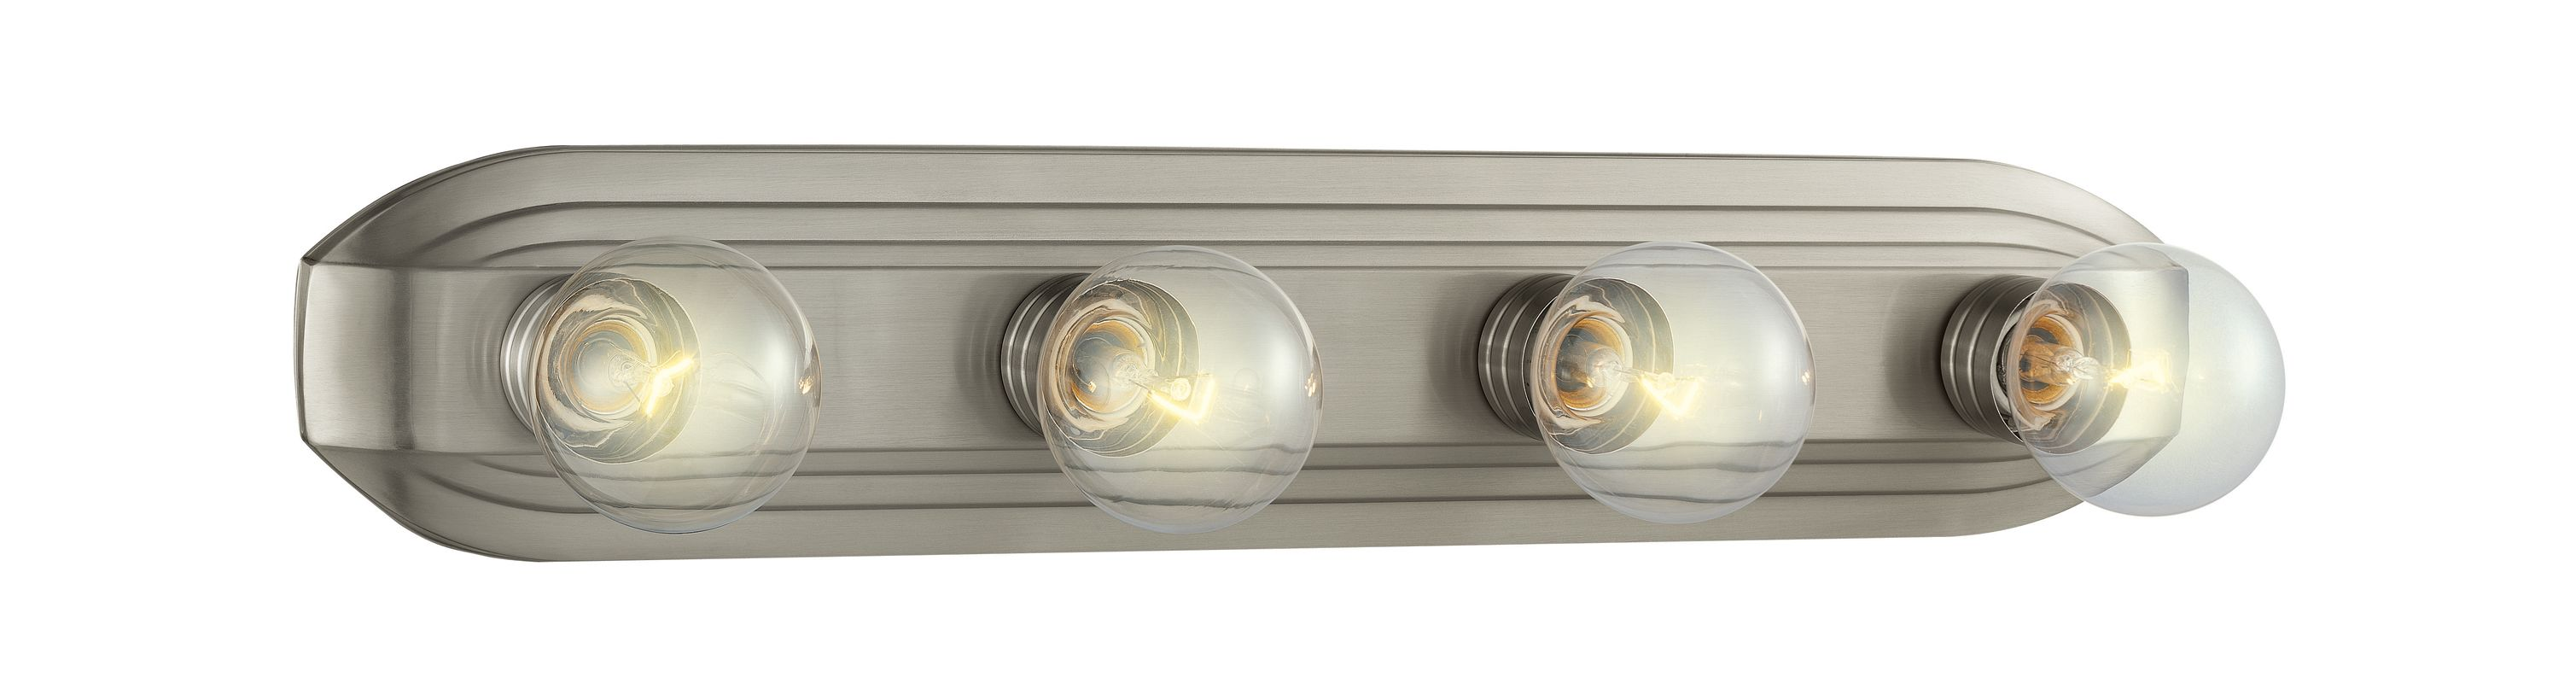 Designers Fountain 6614 Four Light 400 Watt Bathroom Fixture from the